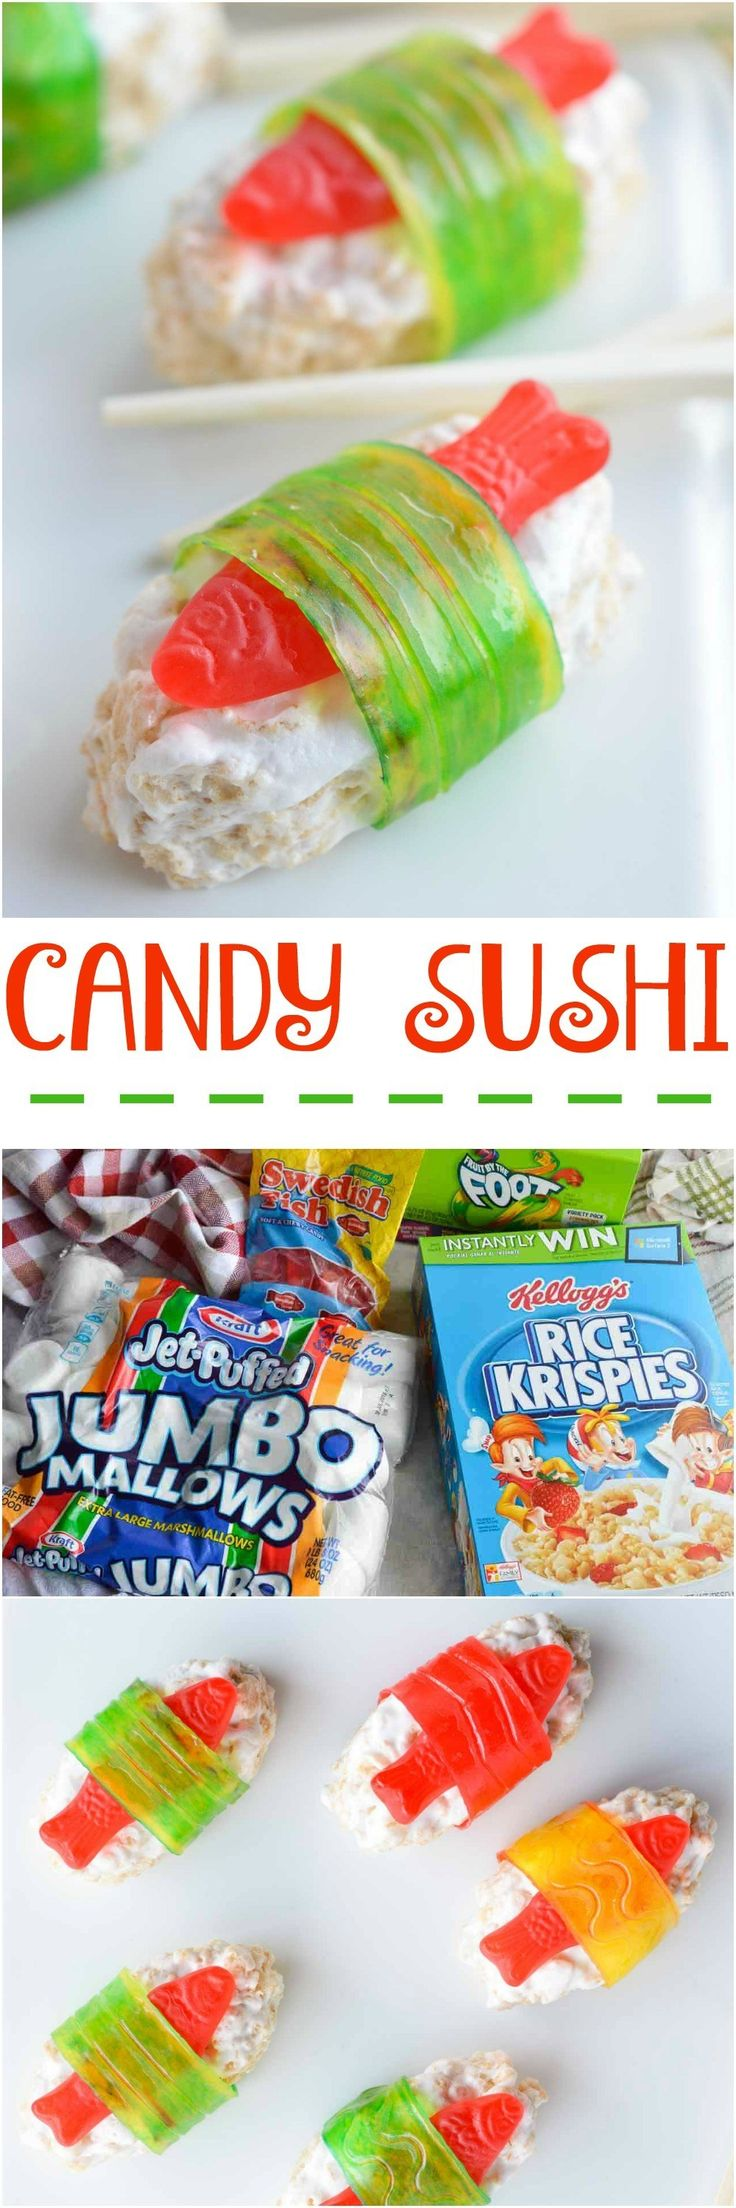 The kids will go crazy for this Candy Sushi! Made with ...